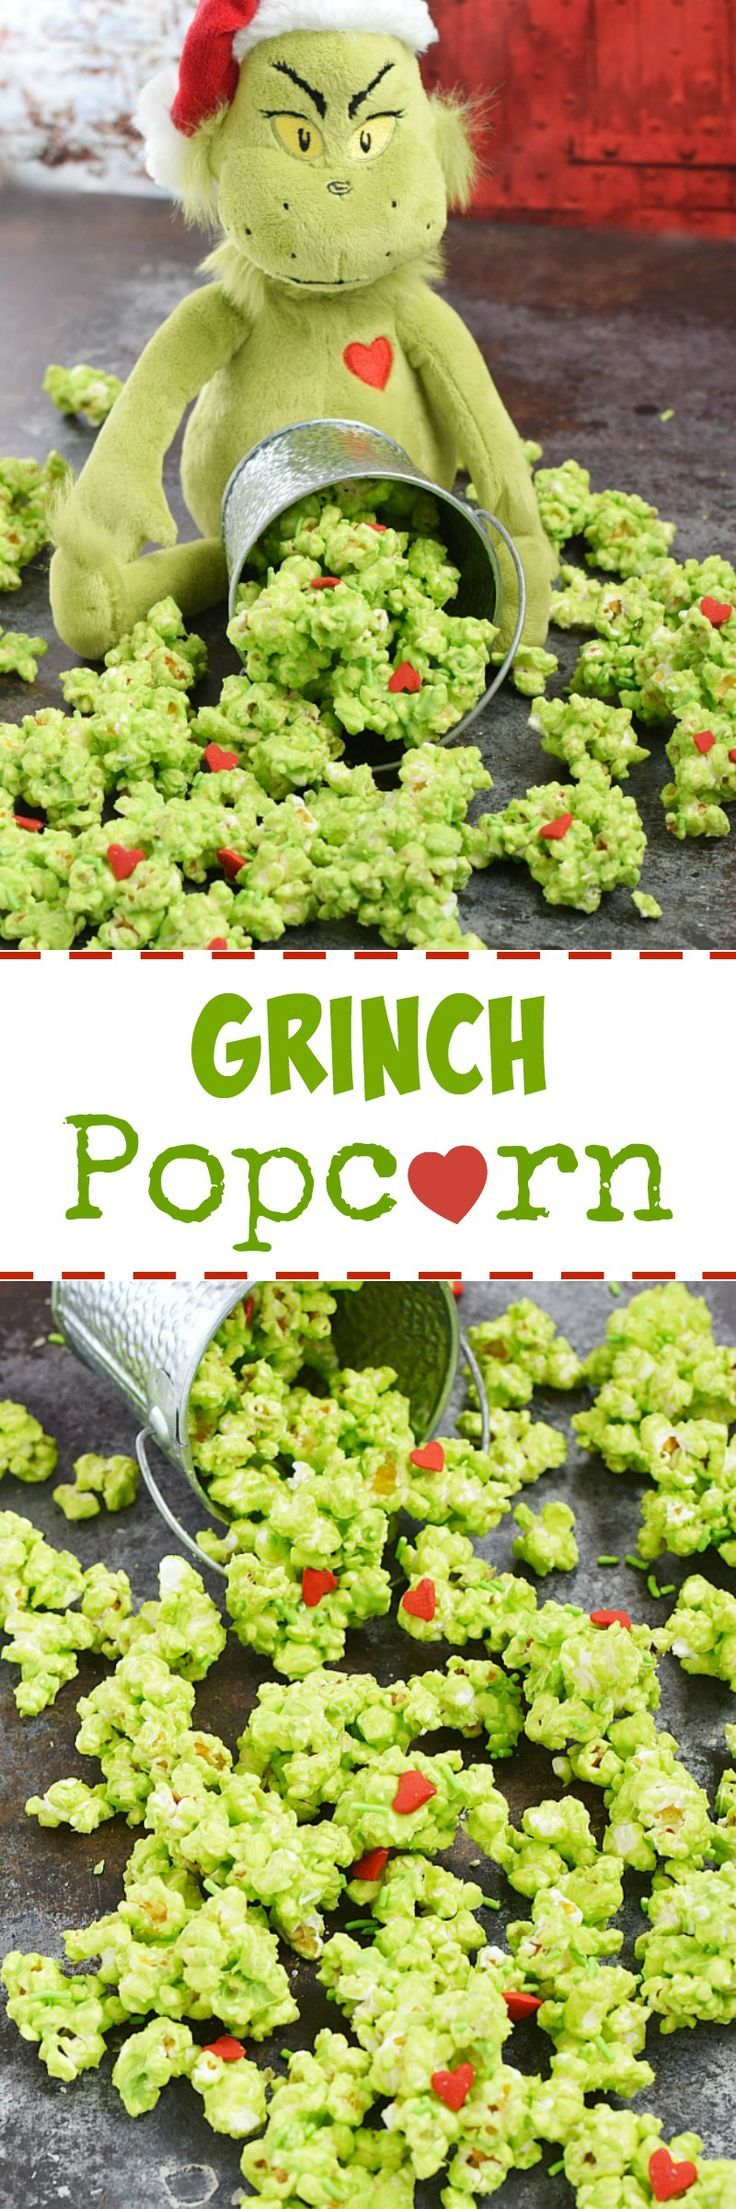 This Grinch Popcorn is so delicious that you might find it hard to share, but you will because you are not a Grinch